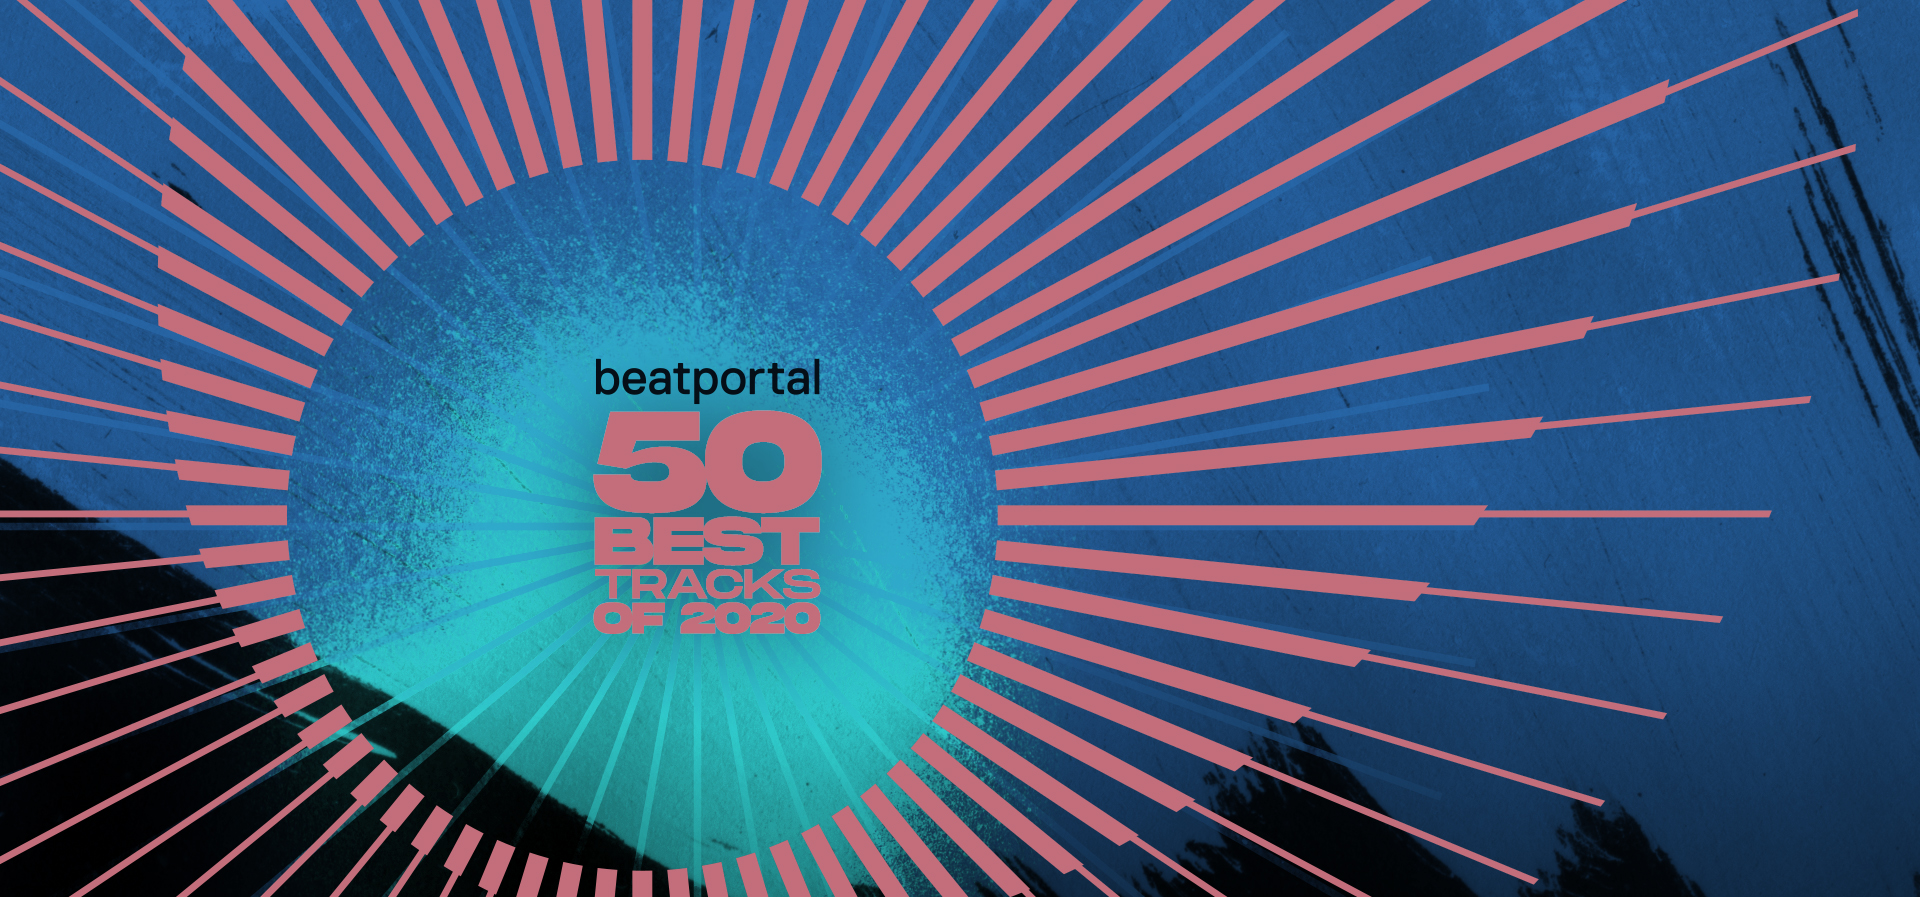 The 50 Best Tracks Of 2020